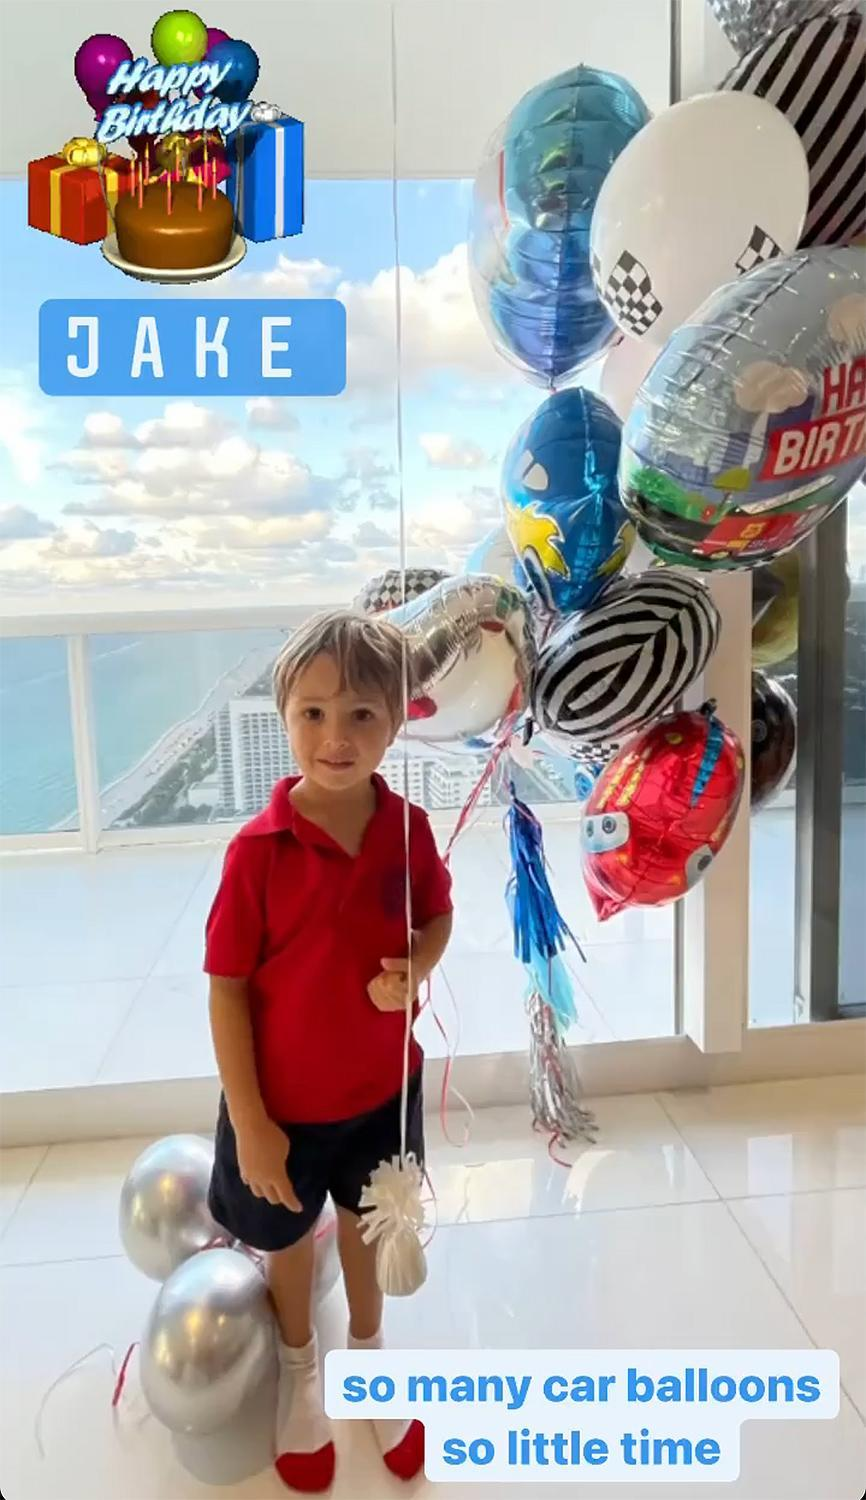 """<p>Joey Gonzalez and Jonathan Rollo's son <a href=""""https://people.com/parents/barrys-bootcamp-ceo-joey-gonzalez-husband-jonathan-rollo-welcome-son-jake-stone/"""" rel=""""nofollow noopener"""" target=""""_blank"""" data-ylk=""""slk:Jake Stone"""" class=""""link rapid-noclick-resp"""">Jake Stone</a> turned 4 on April 8.</p>"""